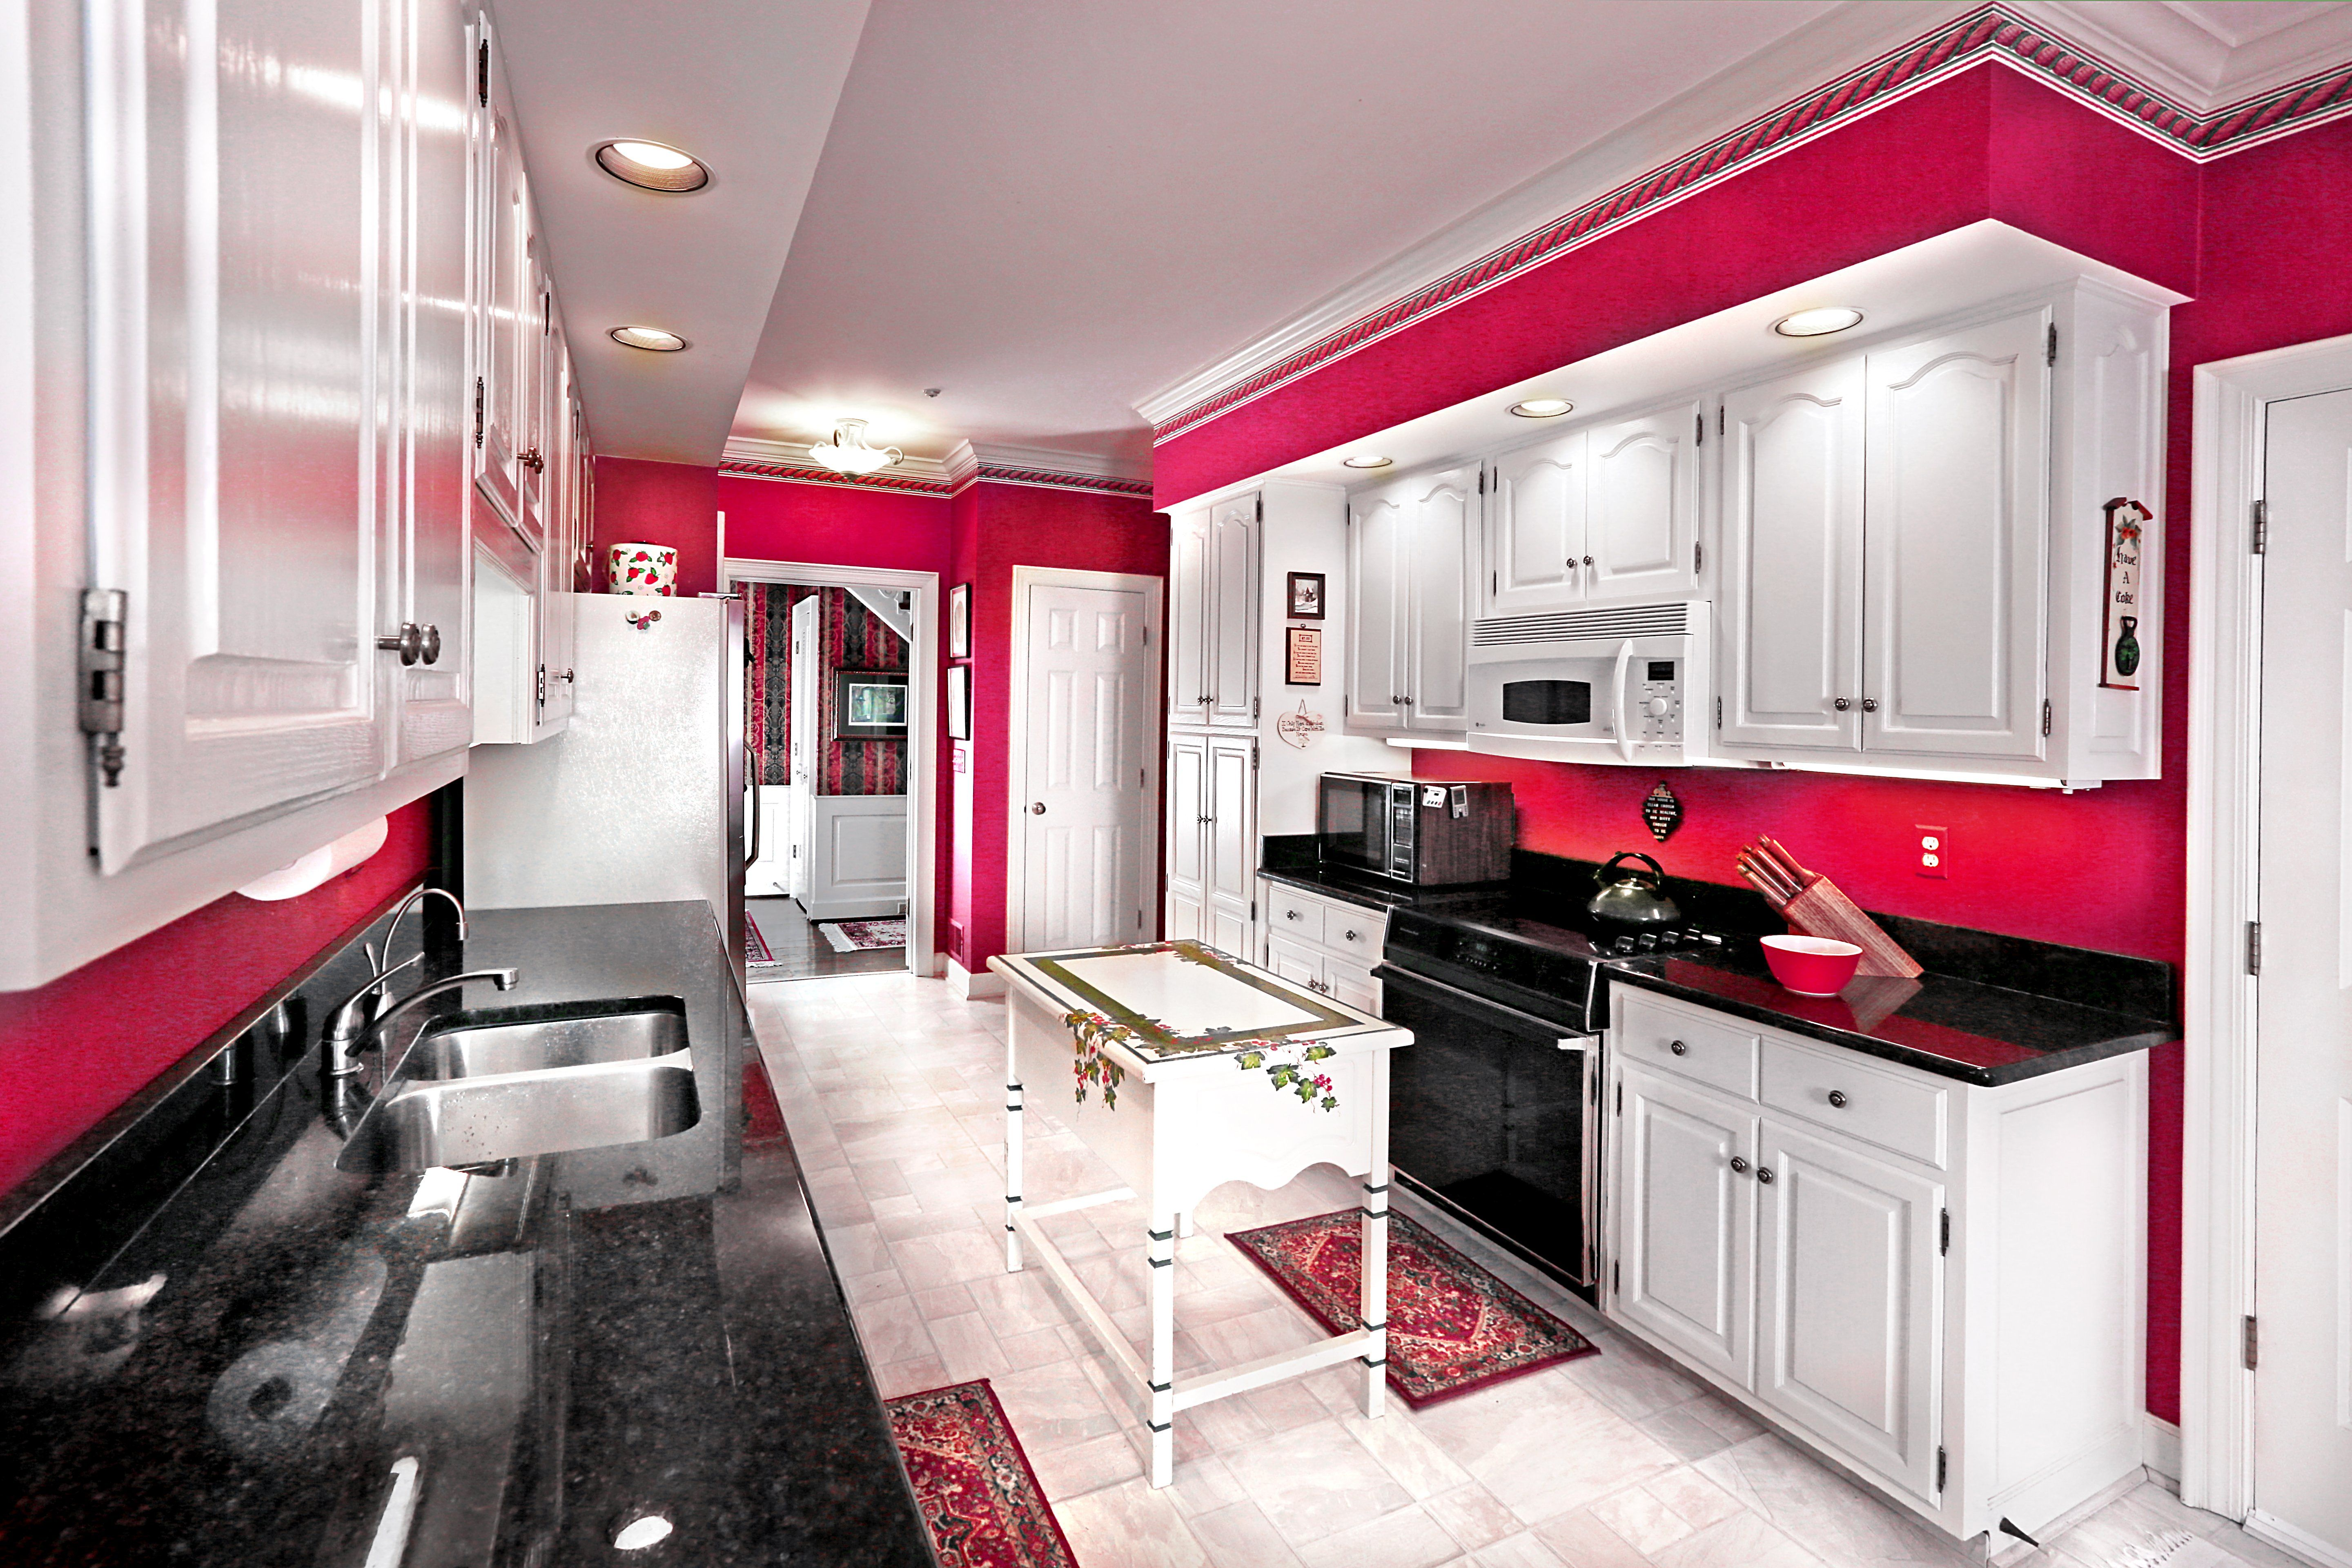 Rhythm And Hues Colorful Room Painting Ideas Red Kitchen Walls Room Colors Kitchen Inspirations